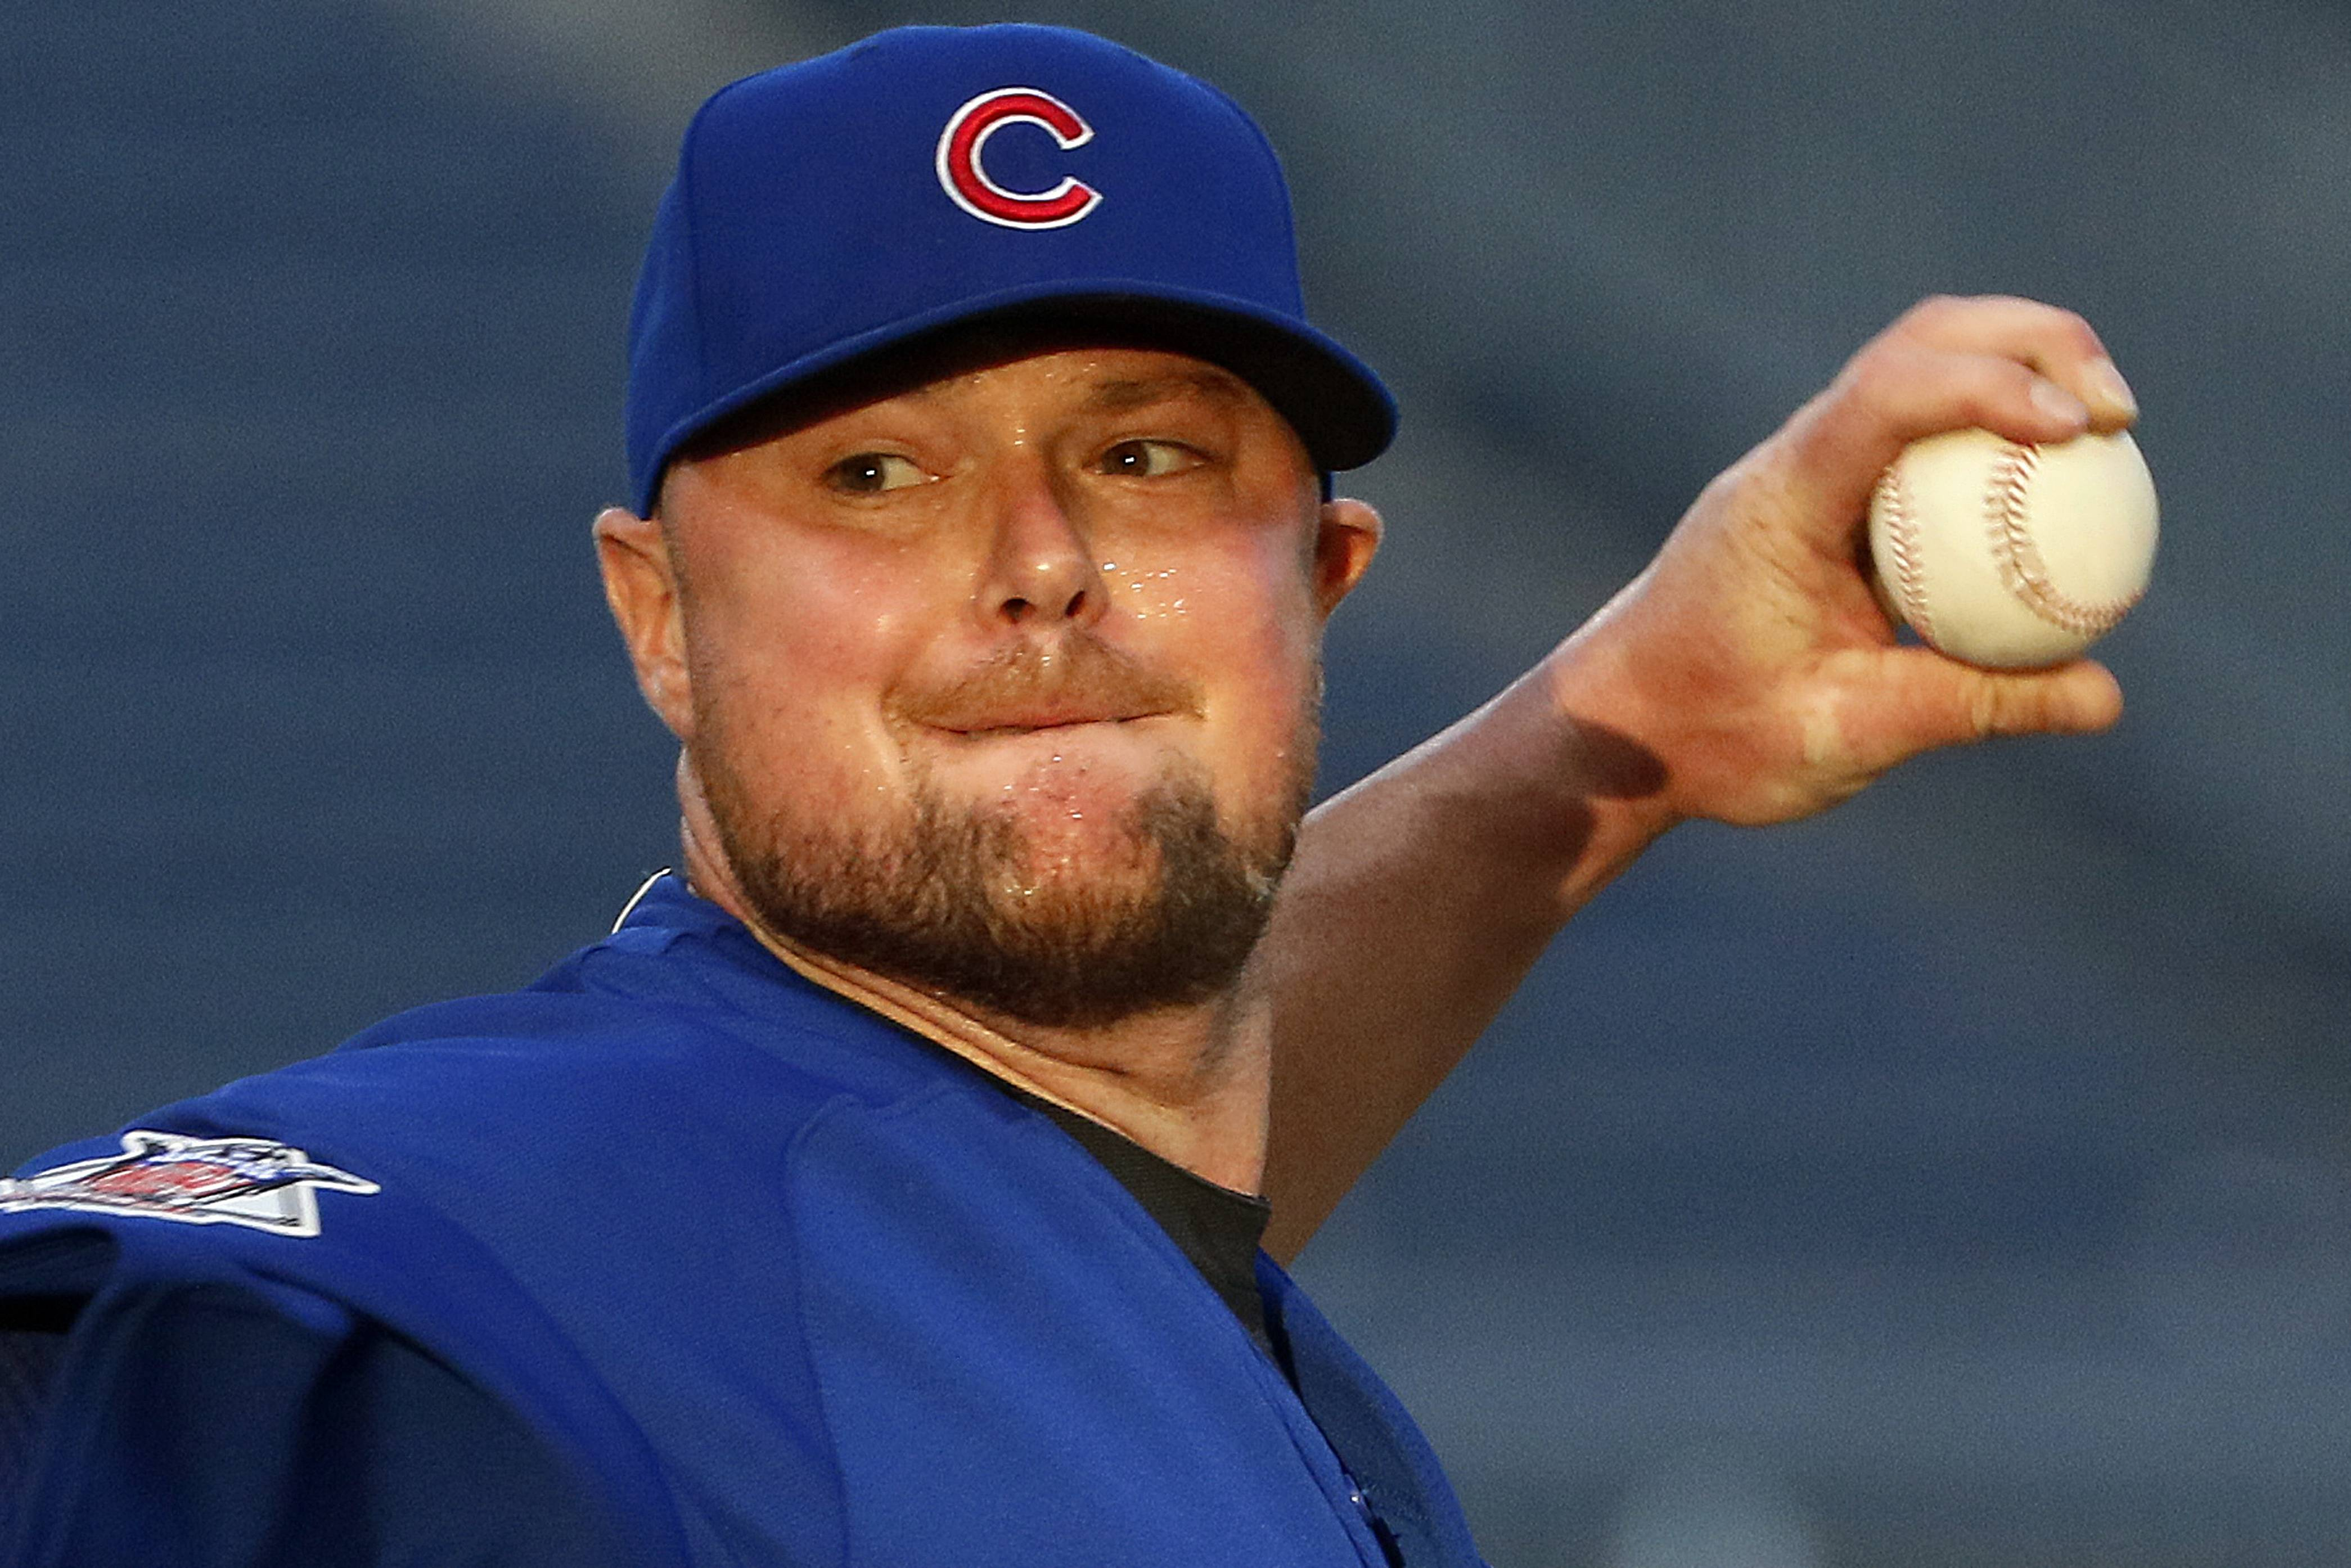 Associated Press Chicago Cubs ace lefty Jon Lester finished April without a win. Lester fell to 0-1 Wednesday night during a 6-5 Cubs loss to the Pittsburgh Pirates at PNC Park.